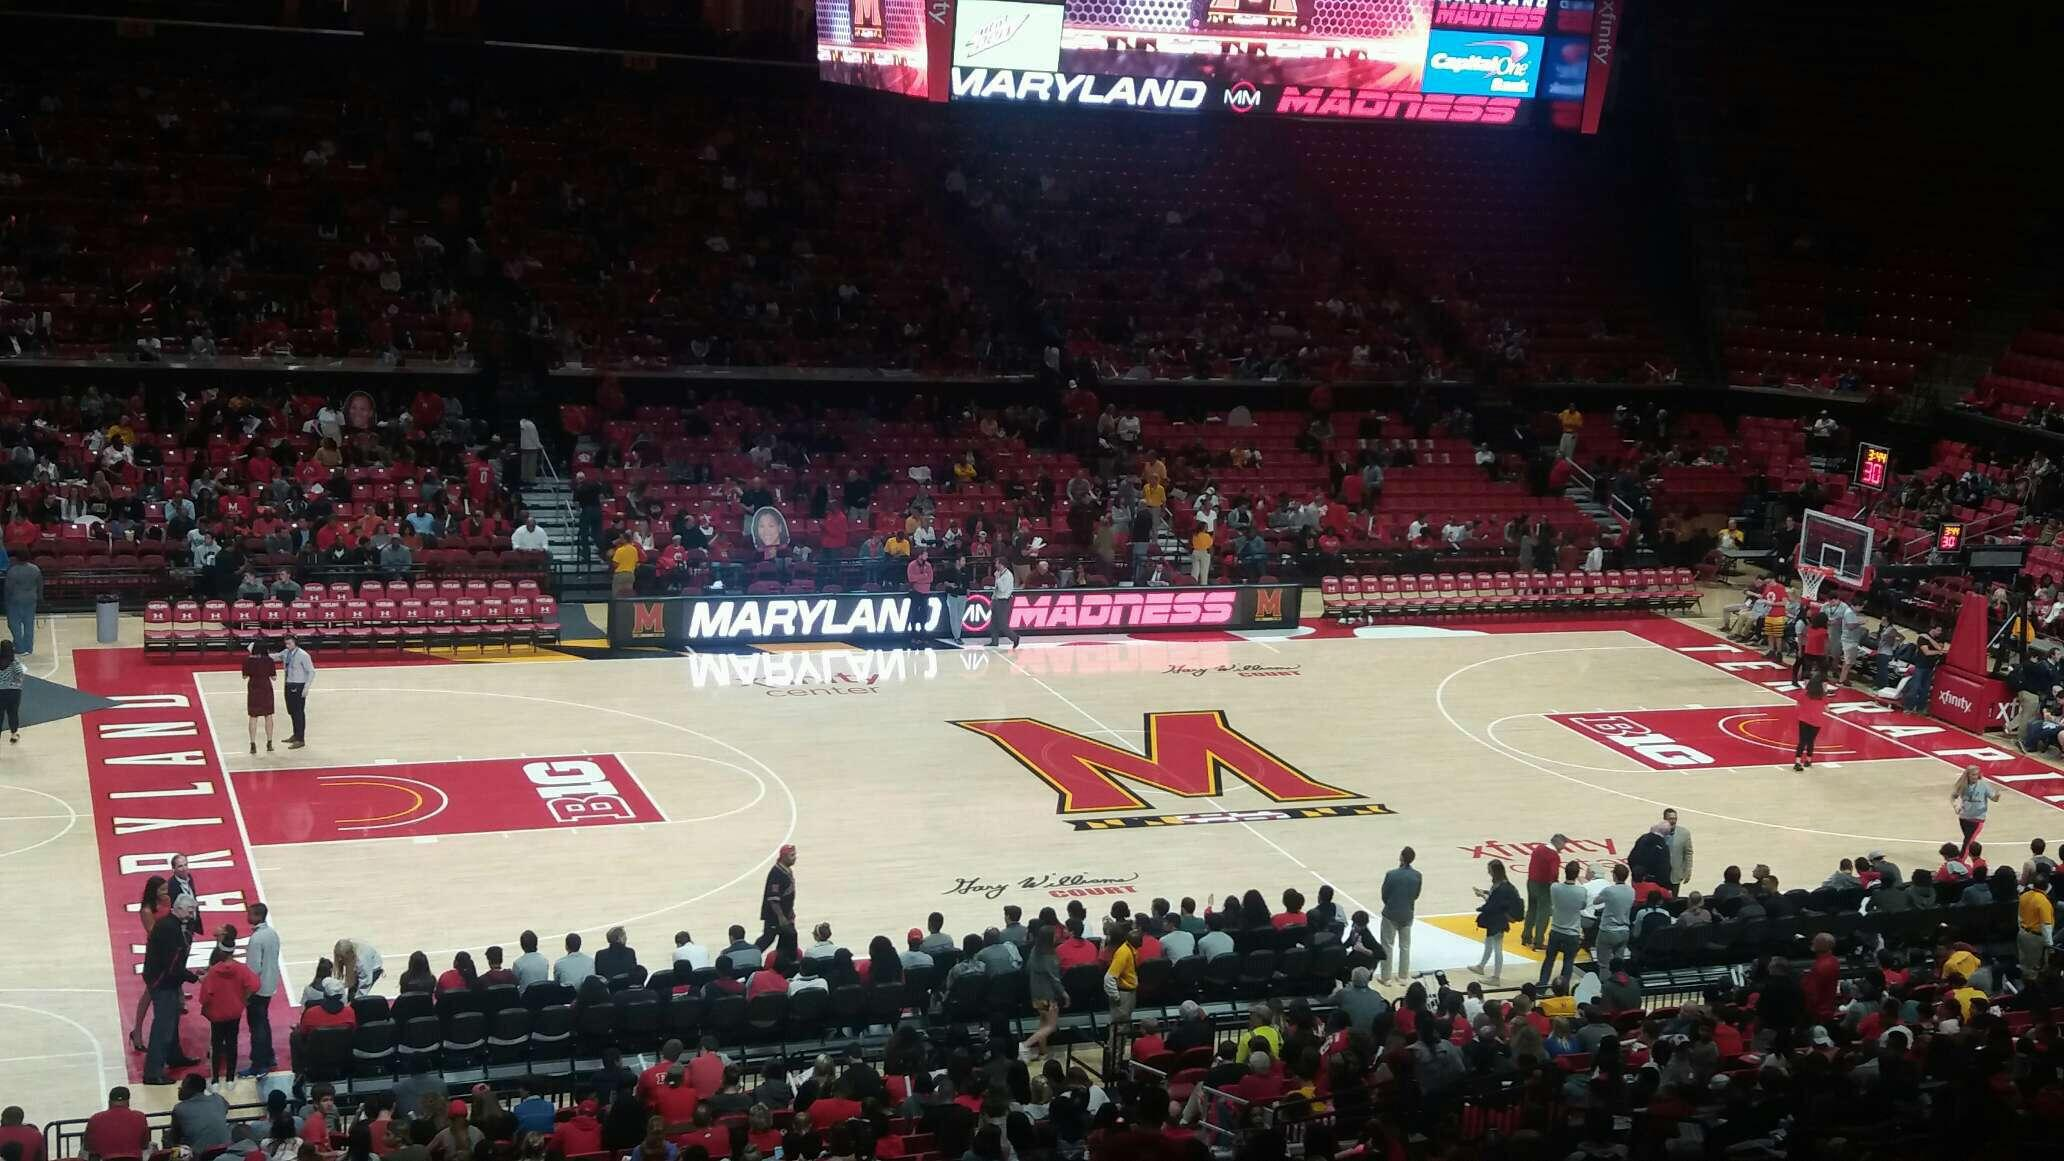 Xfinity Center (Maryland) Section 113 Row 18 Seat 19